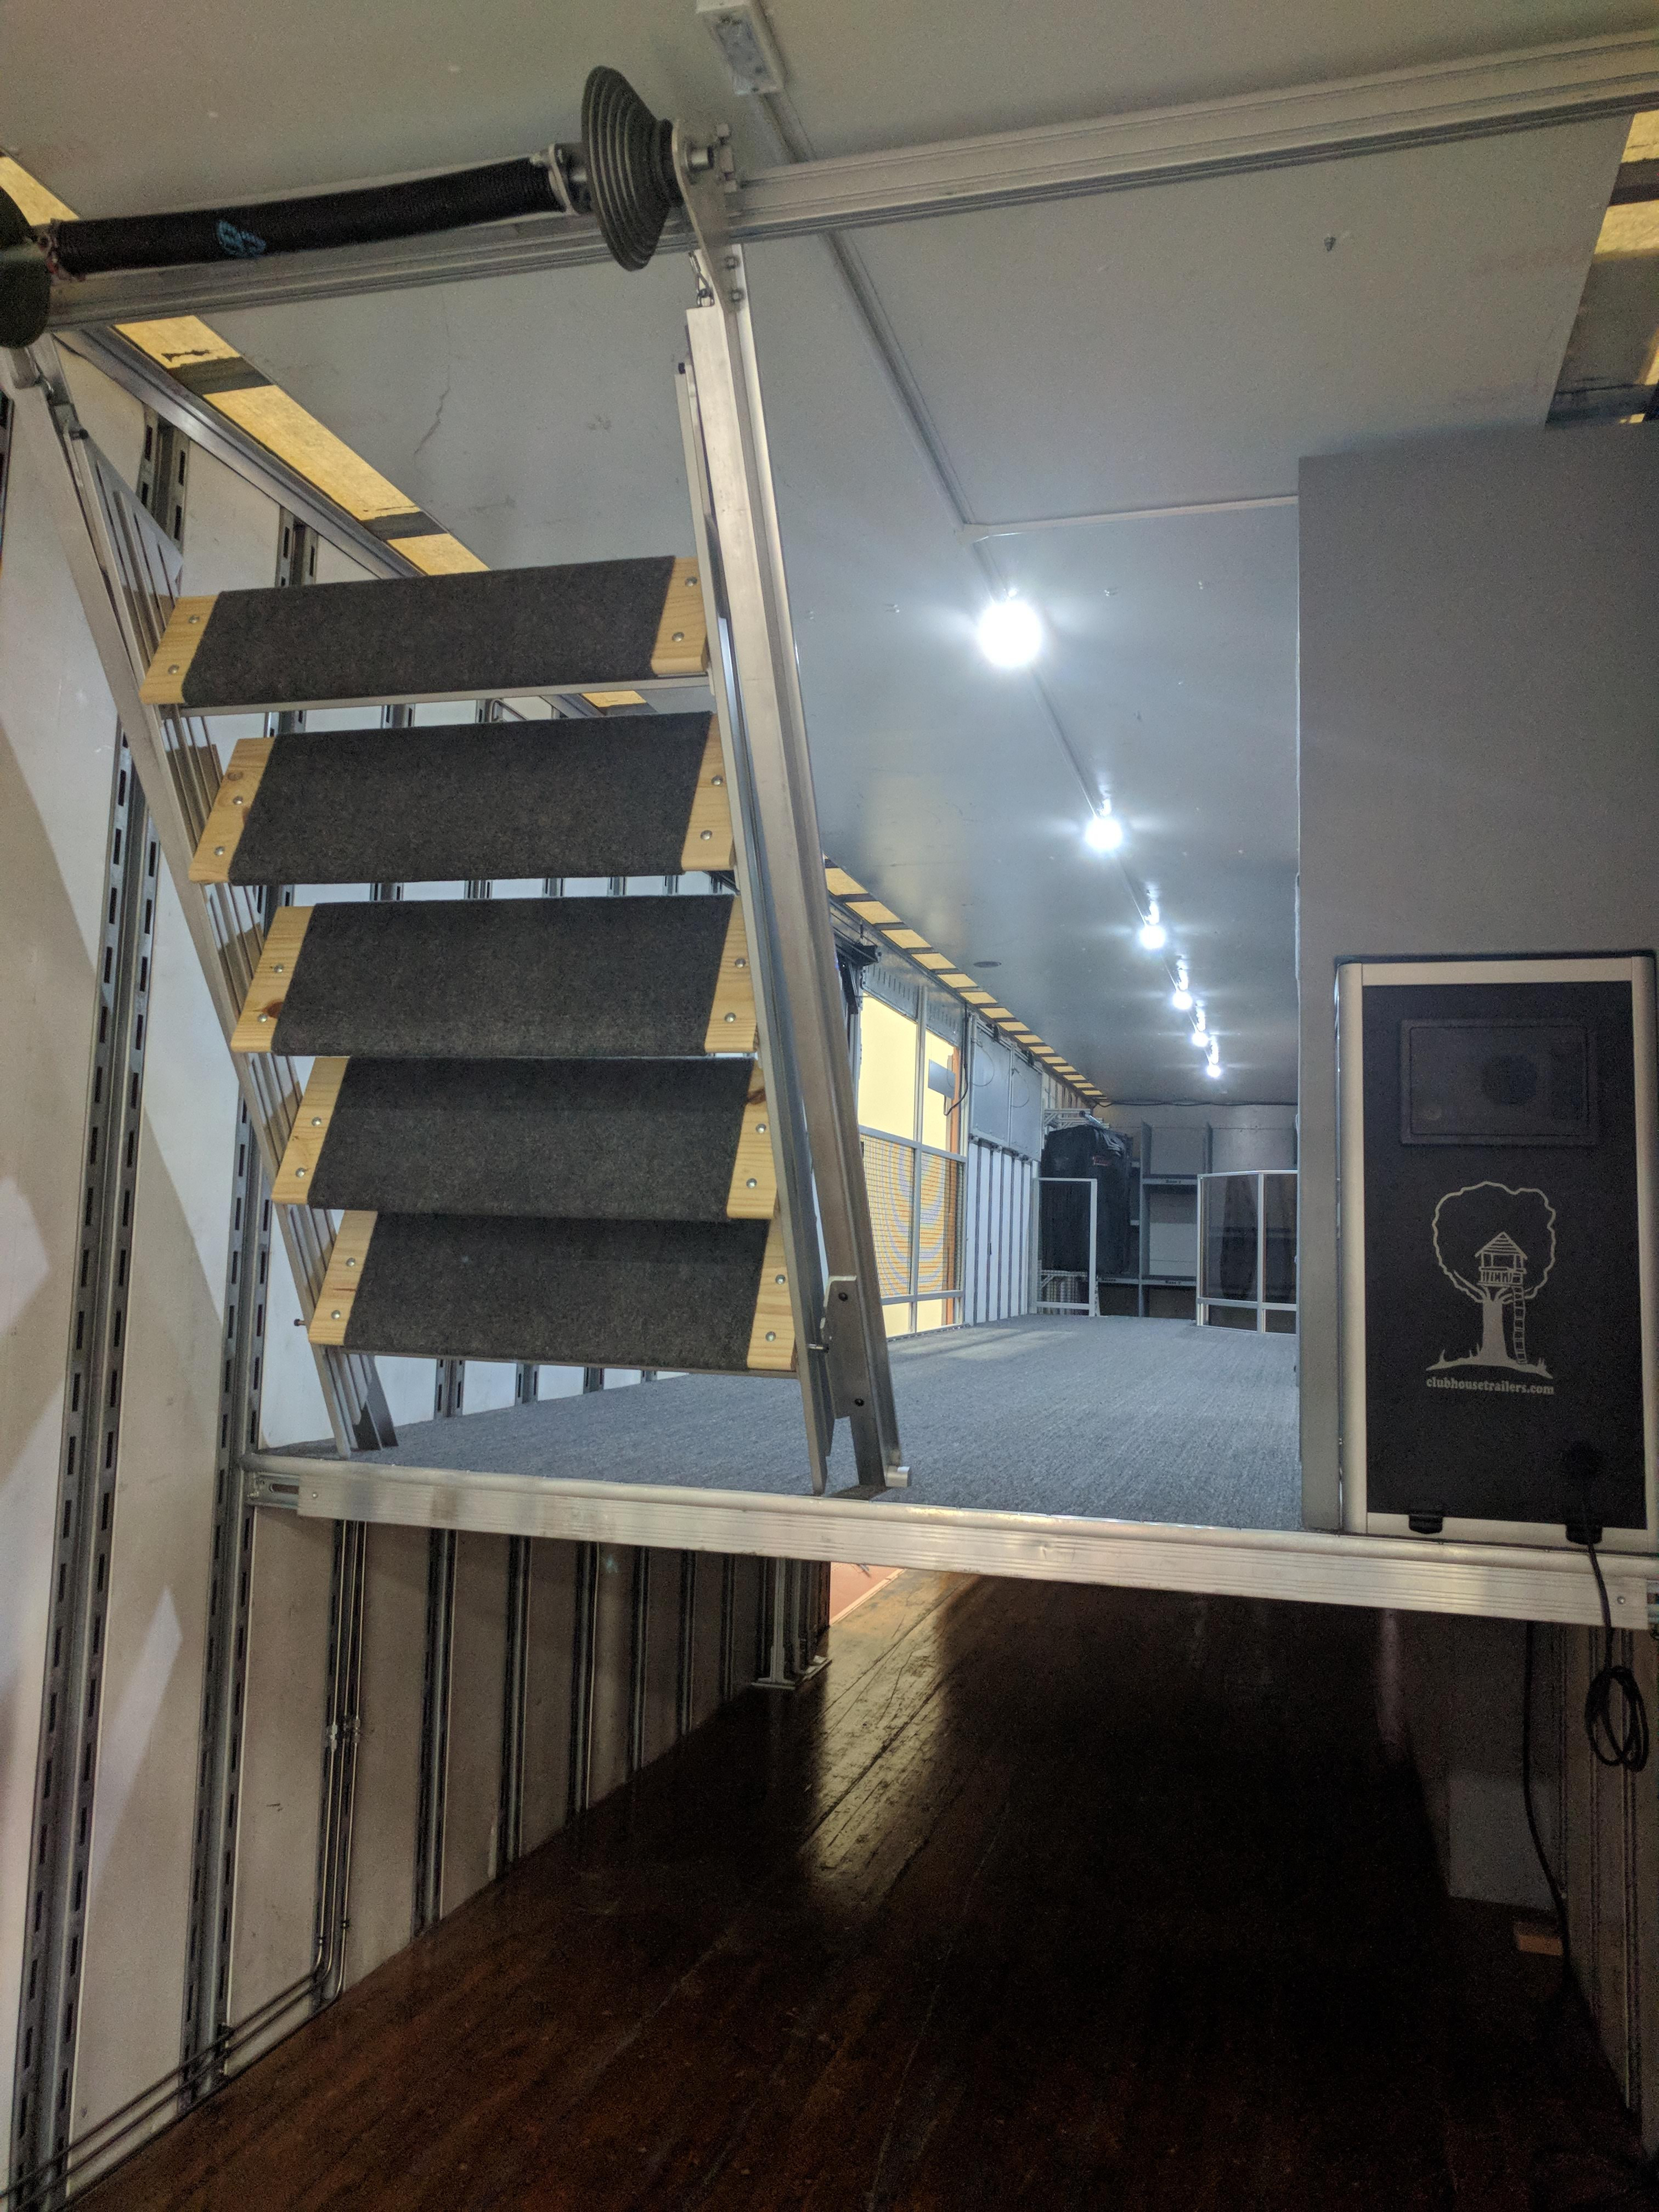 Best ideas about The Staircase Trailer . Save or Pin Retracting Inside Staircase – Clubhouse Trailer pany Now.